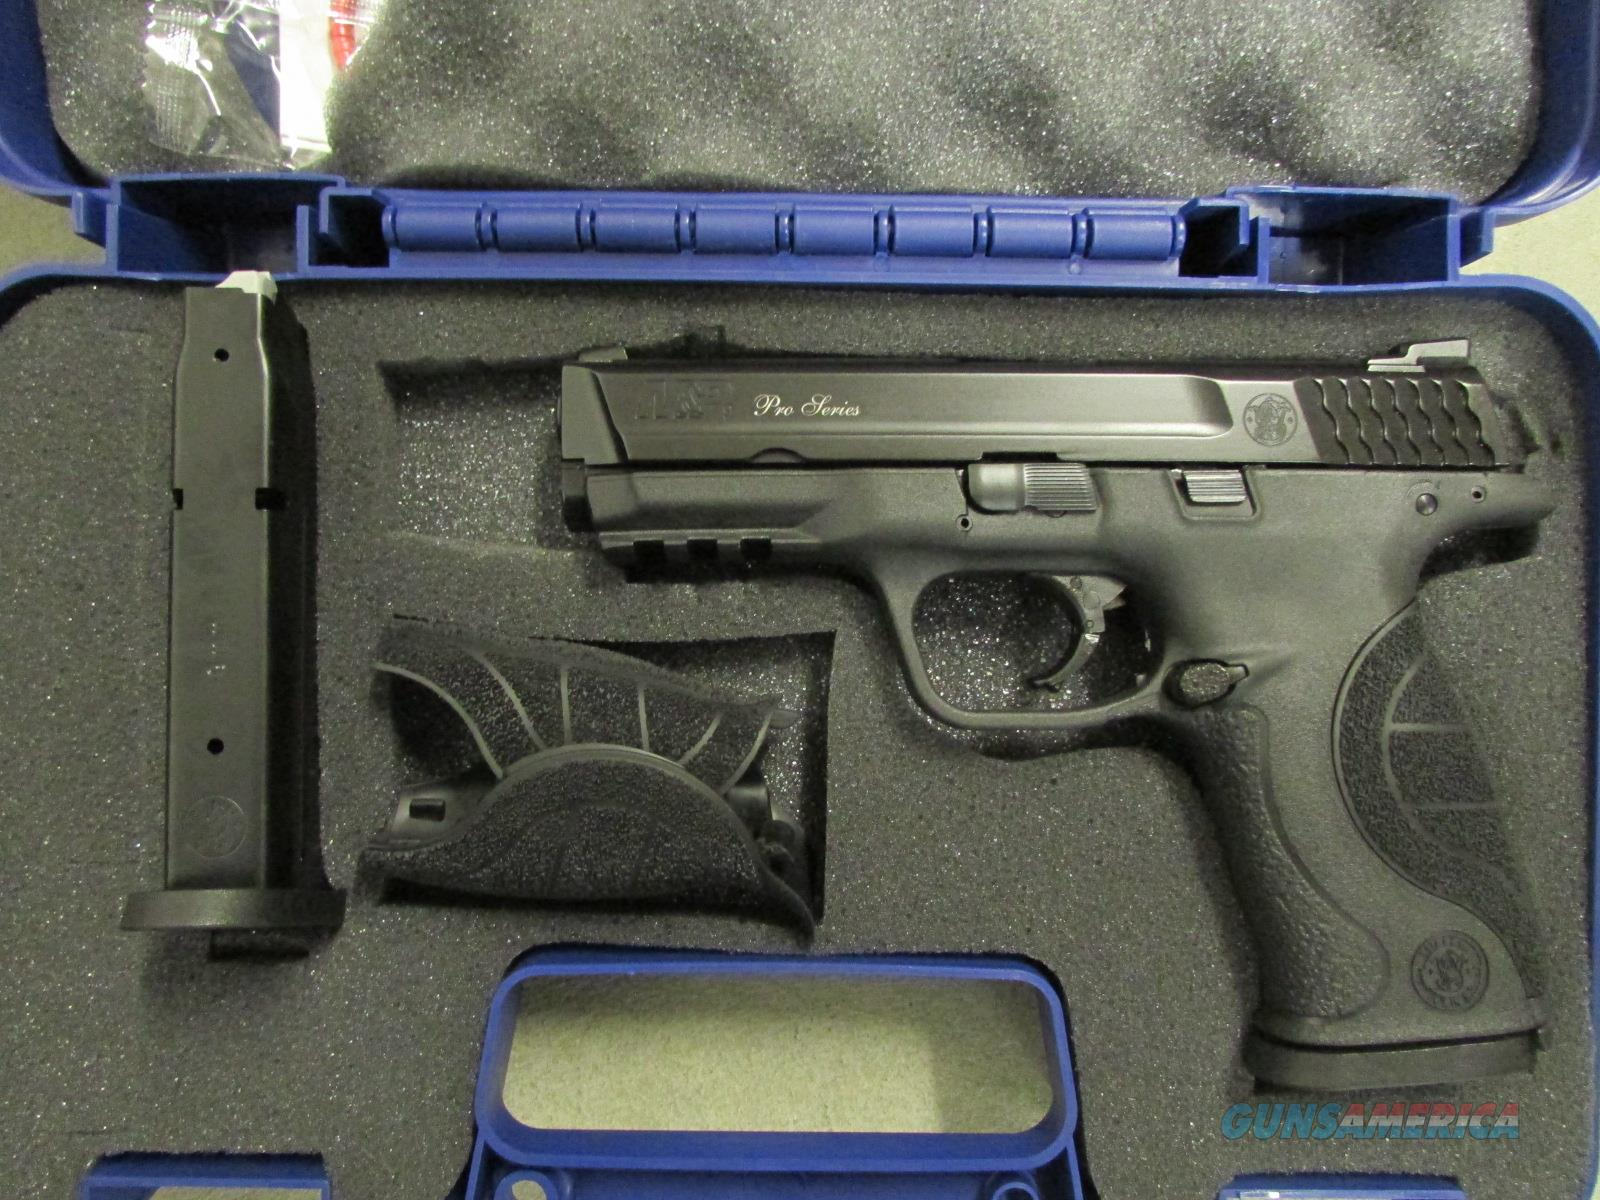 Smith & Wesson Model M&P9 Pro Series with Night Sights 9mm 178035  Guns > Pistols > Smith & Wesson Pistols - Autos > Polymer Frame